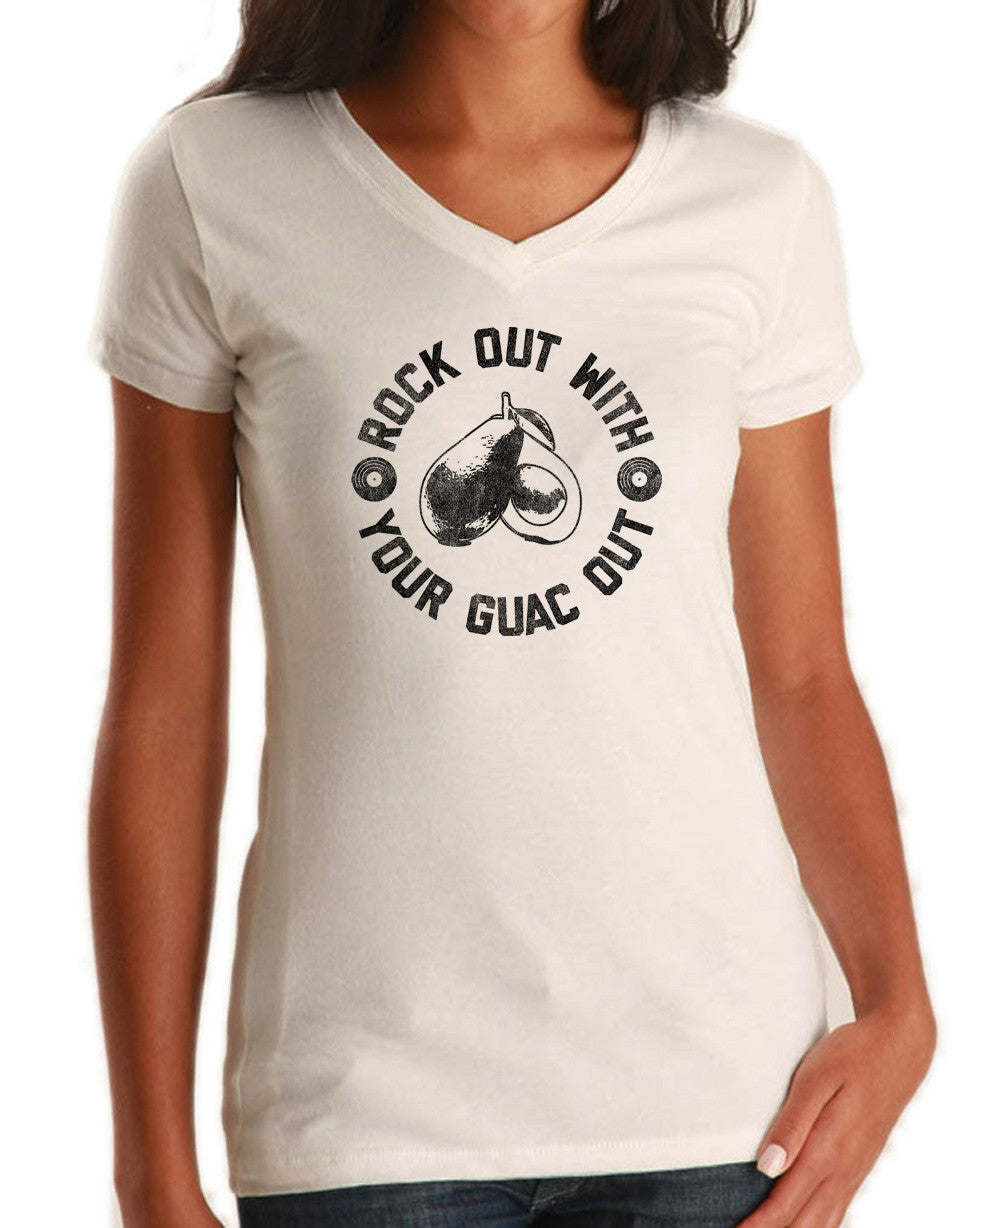 Women's Rock Out With Your Guac Out Guacamole Vneck T-Shirt - Juniors Fit